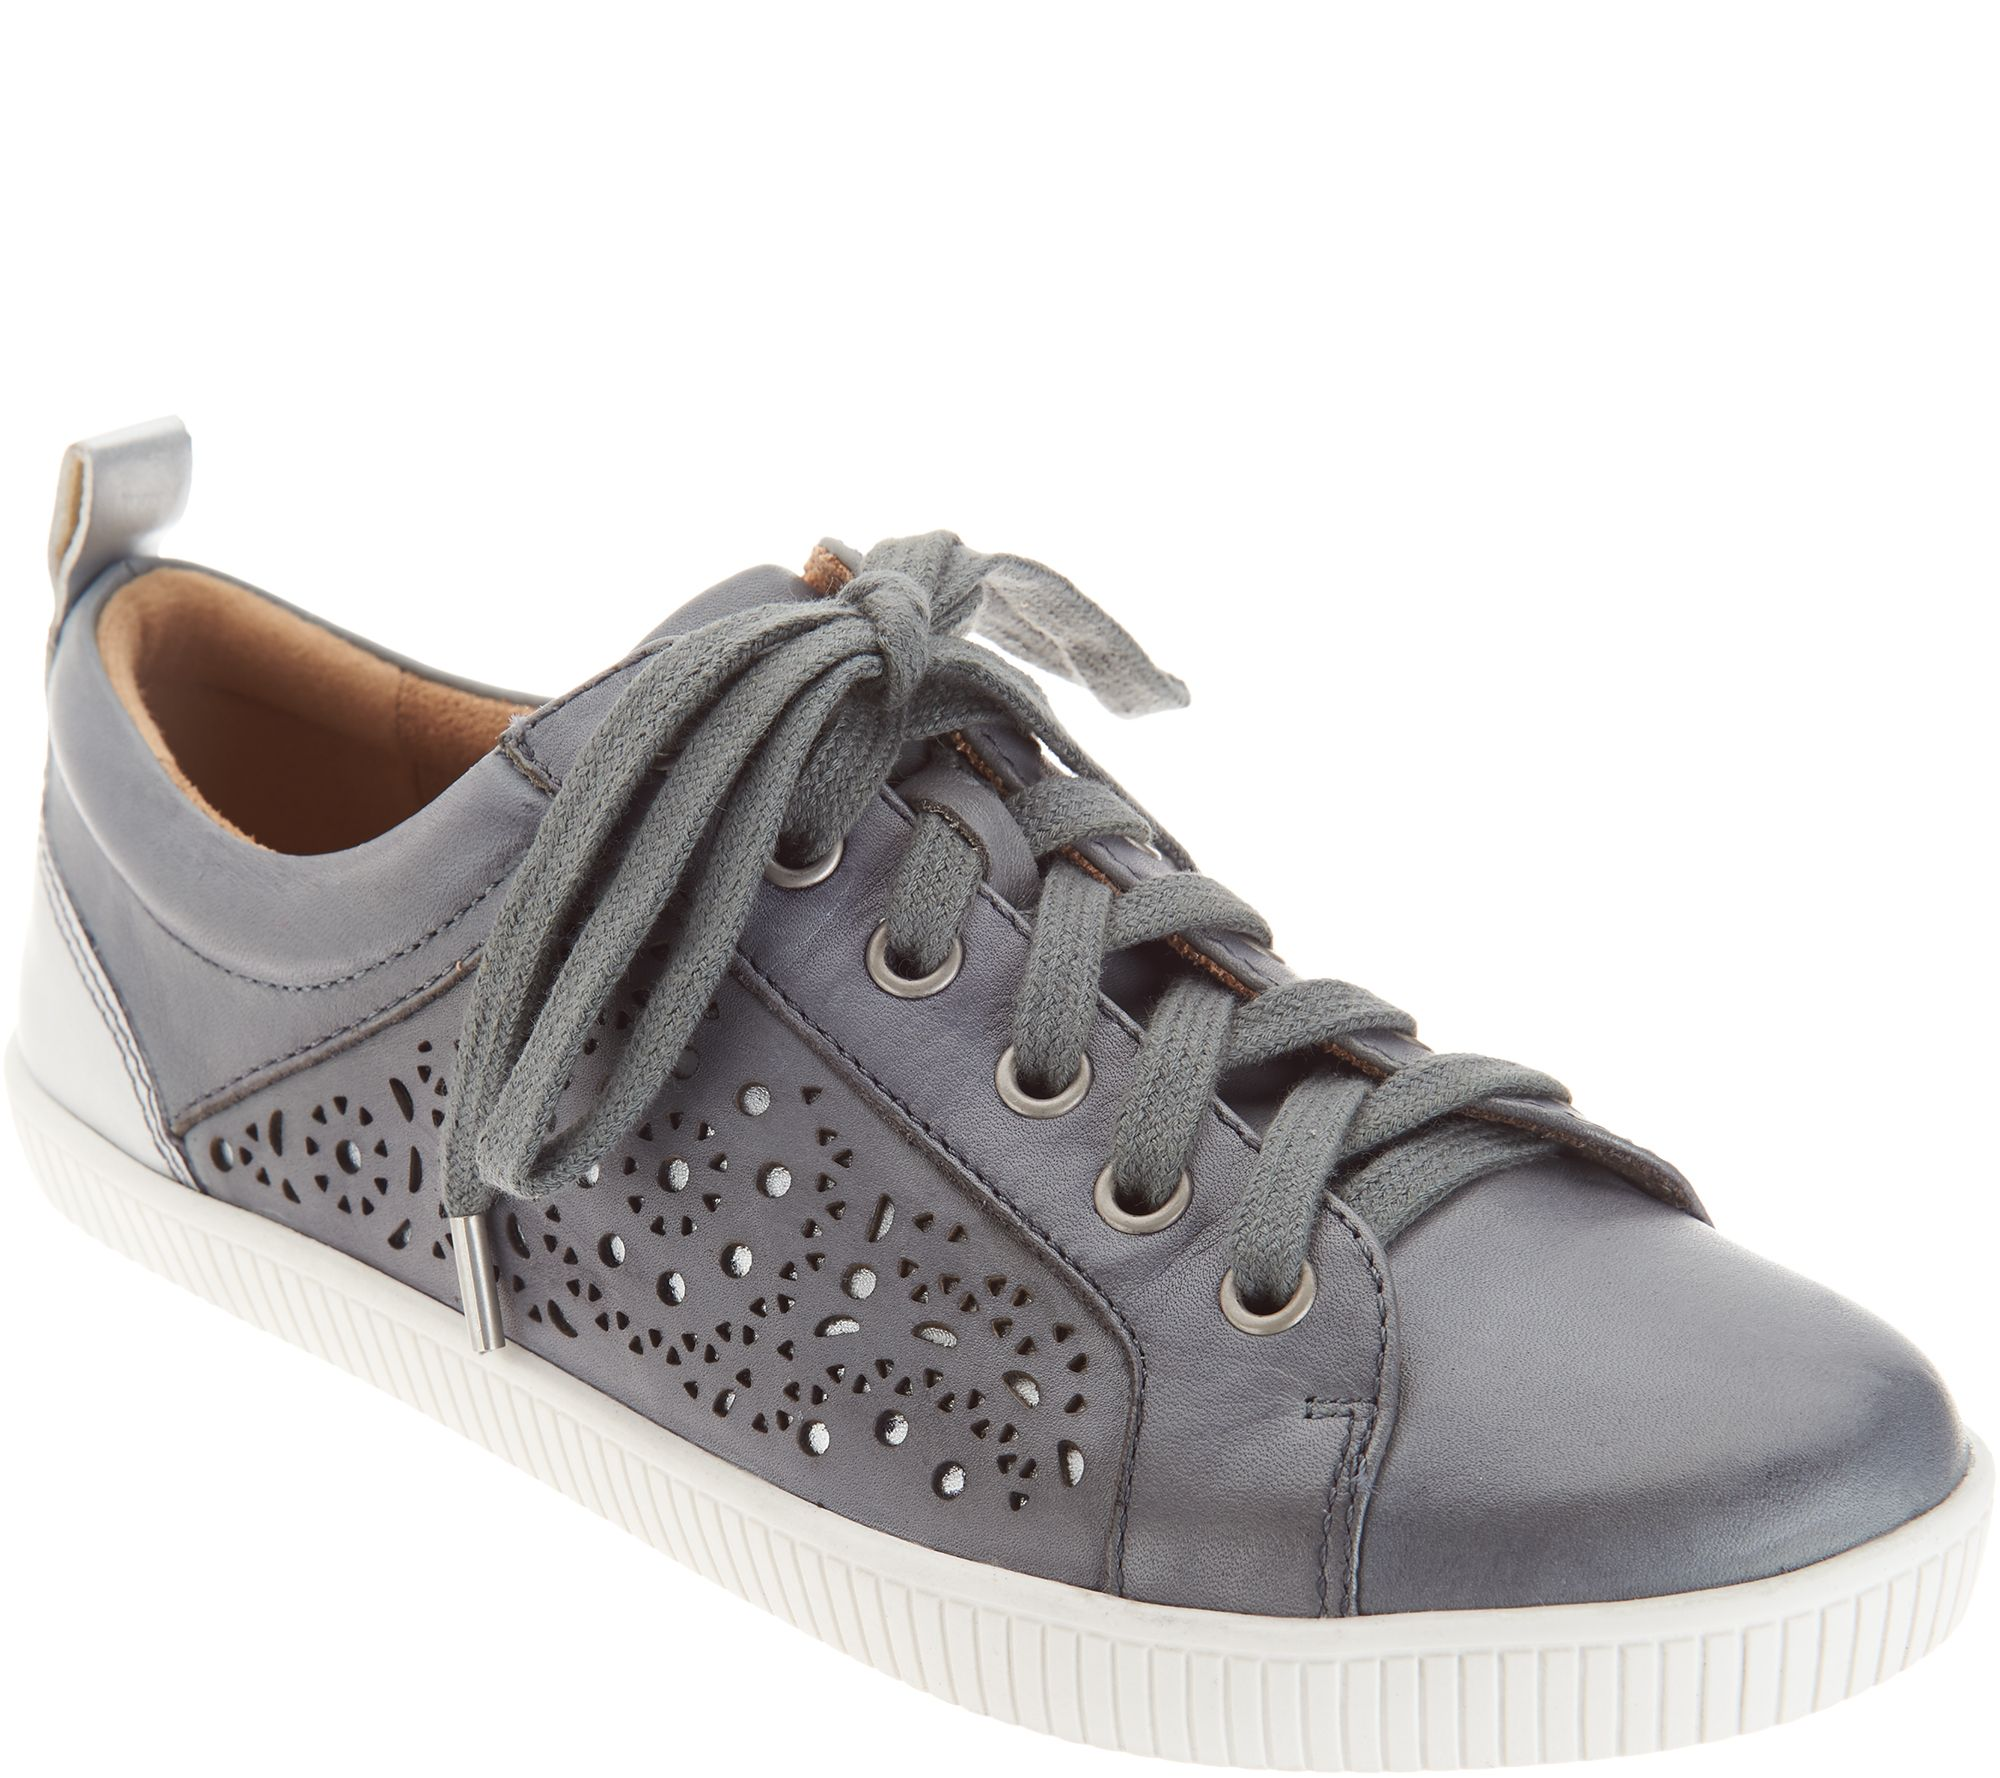 48585502fe570b Earth Perforated Leather Lace-up Shoes - Tangor - Page 1 — QVC.com